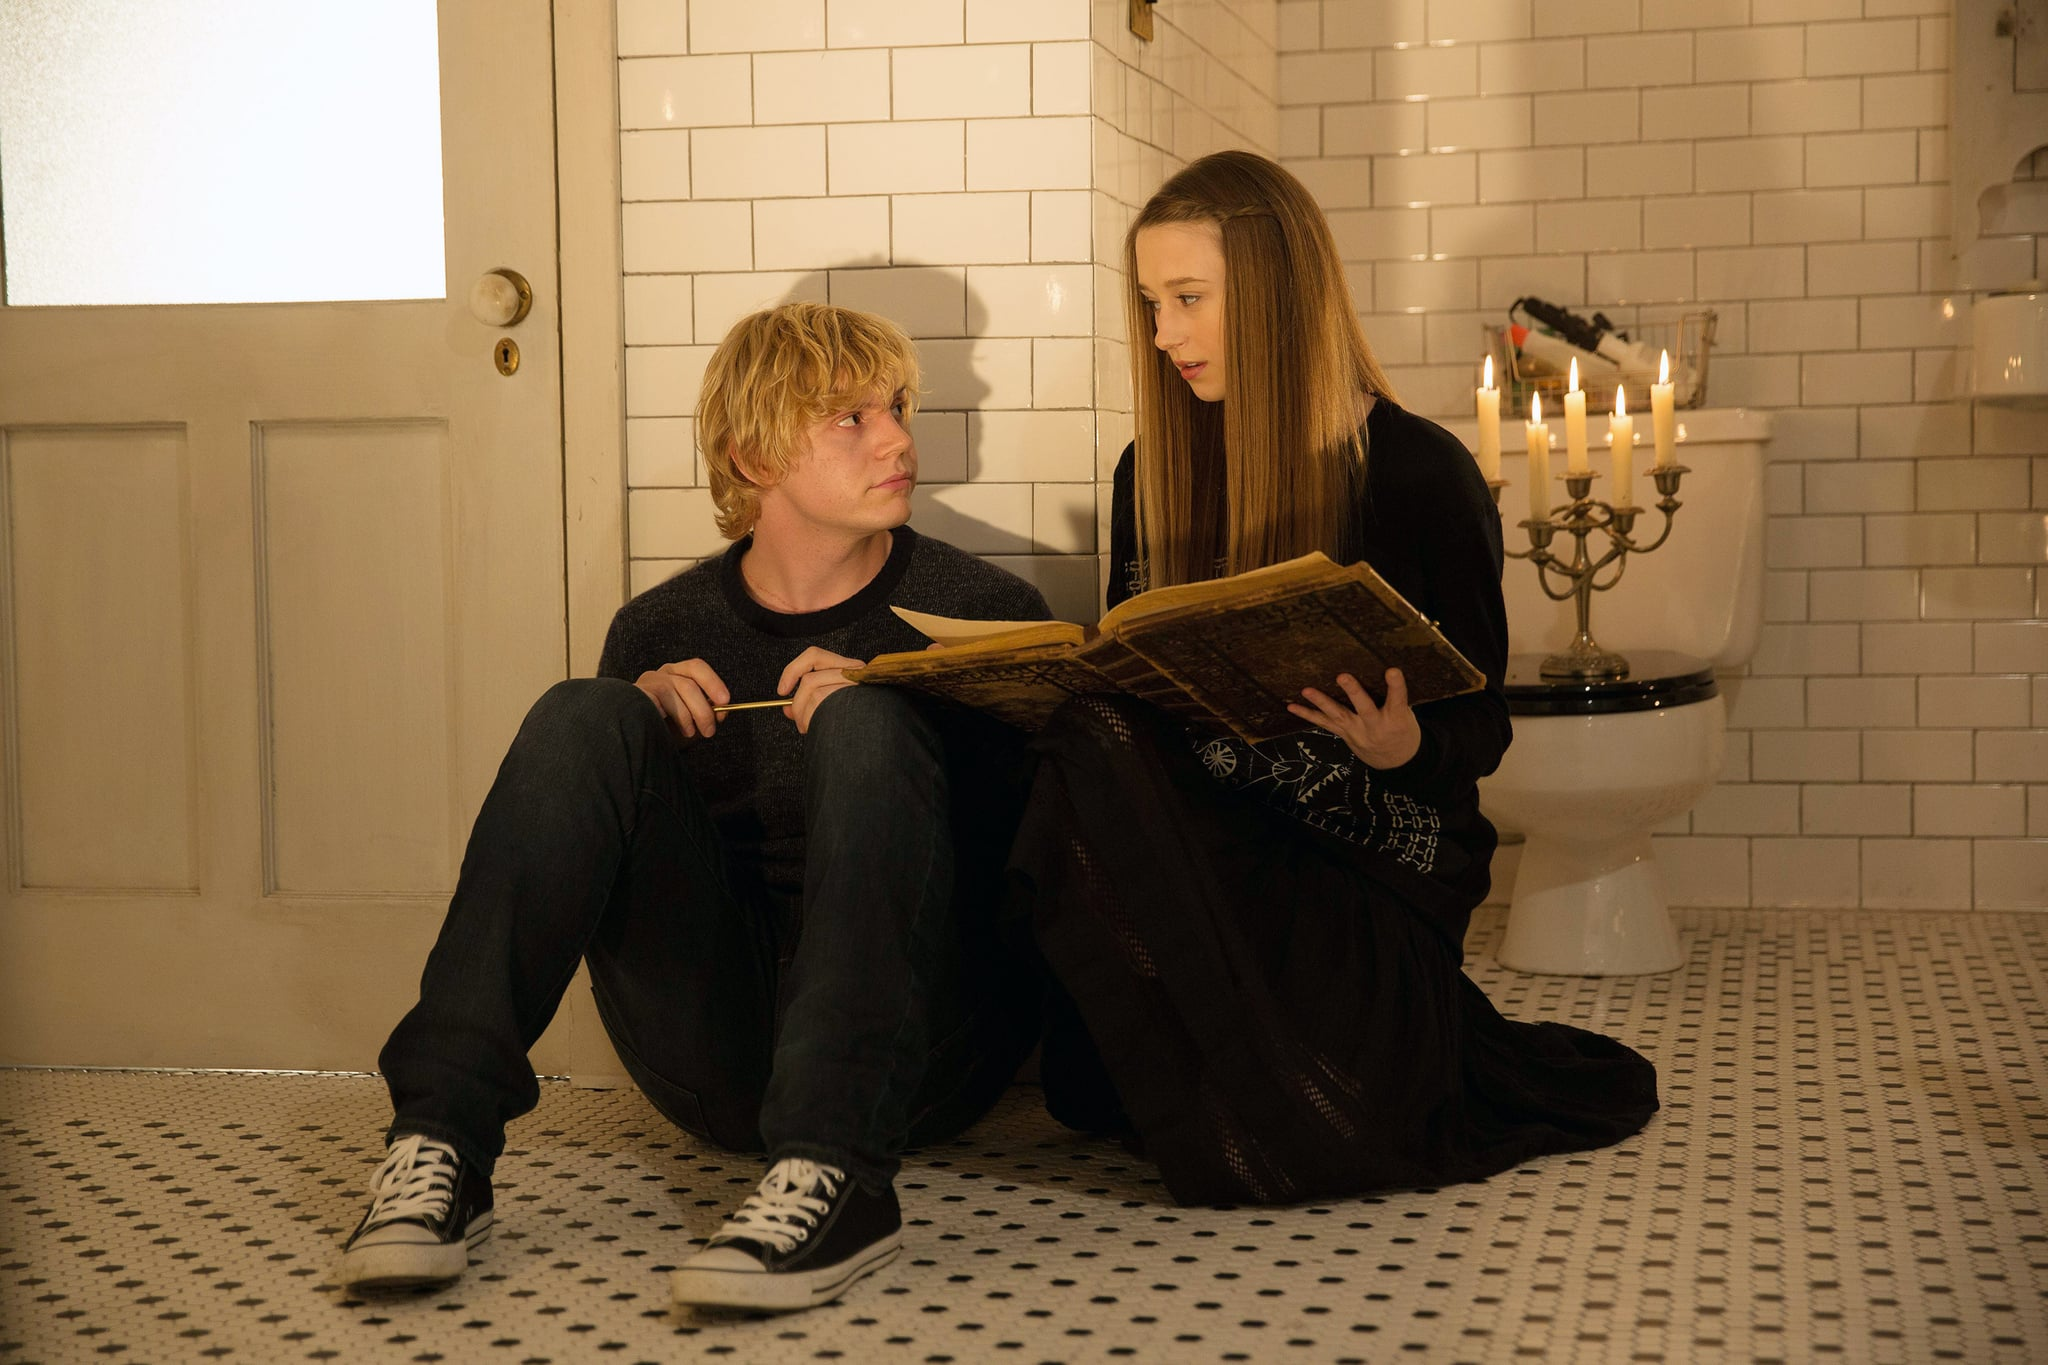 AMERICAN HORROR STORY: COVEN, l-r: Evan Peters, Taissa Farmiga in 'Protect The Coven' (Season 3, Episode 11, aired January 15, 2014). ph: Michele K. Short/FX/courtesy Everett Collection